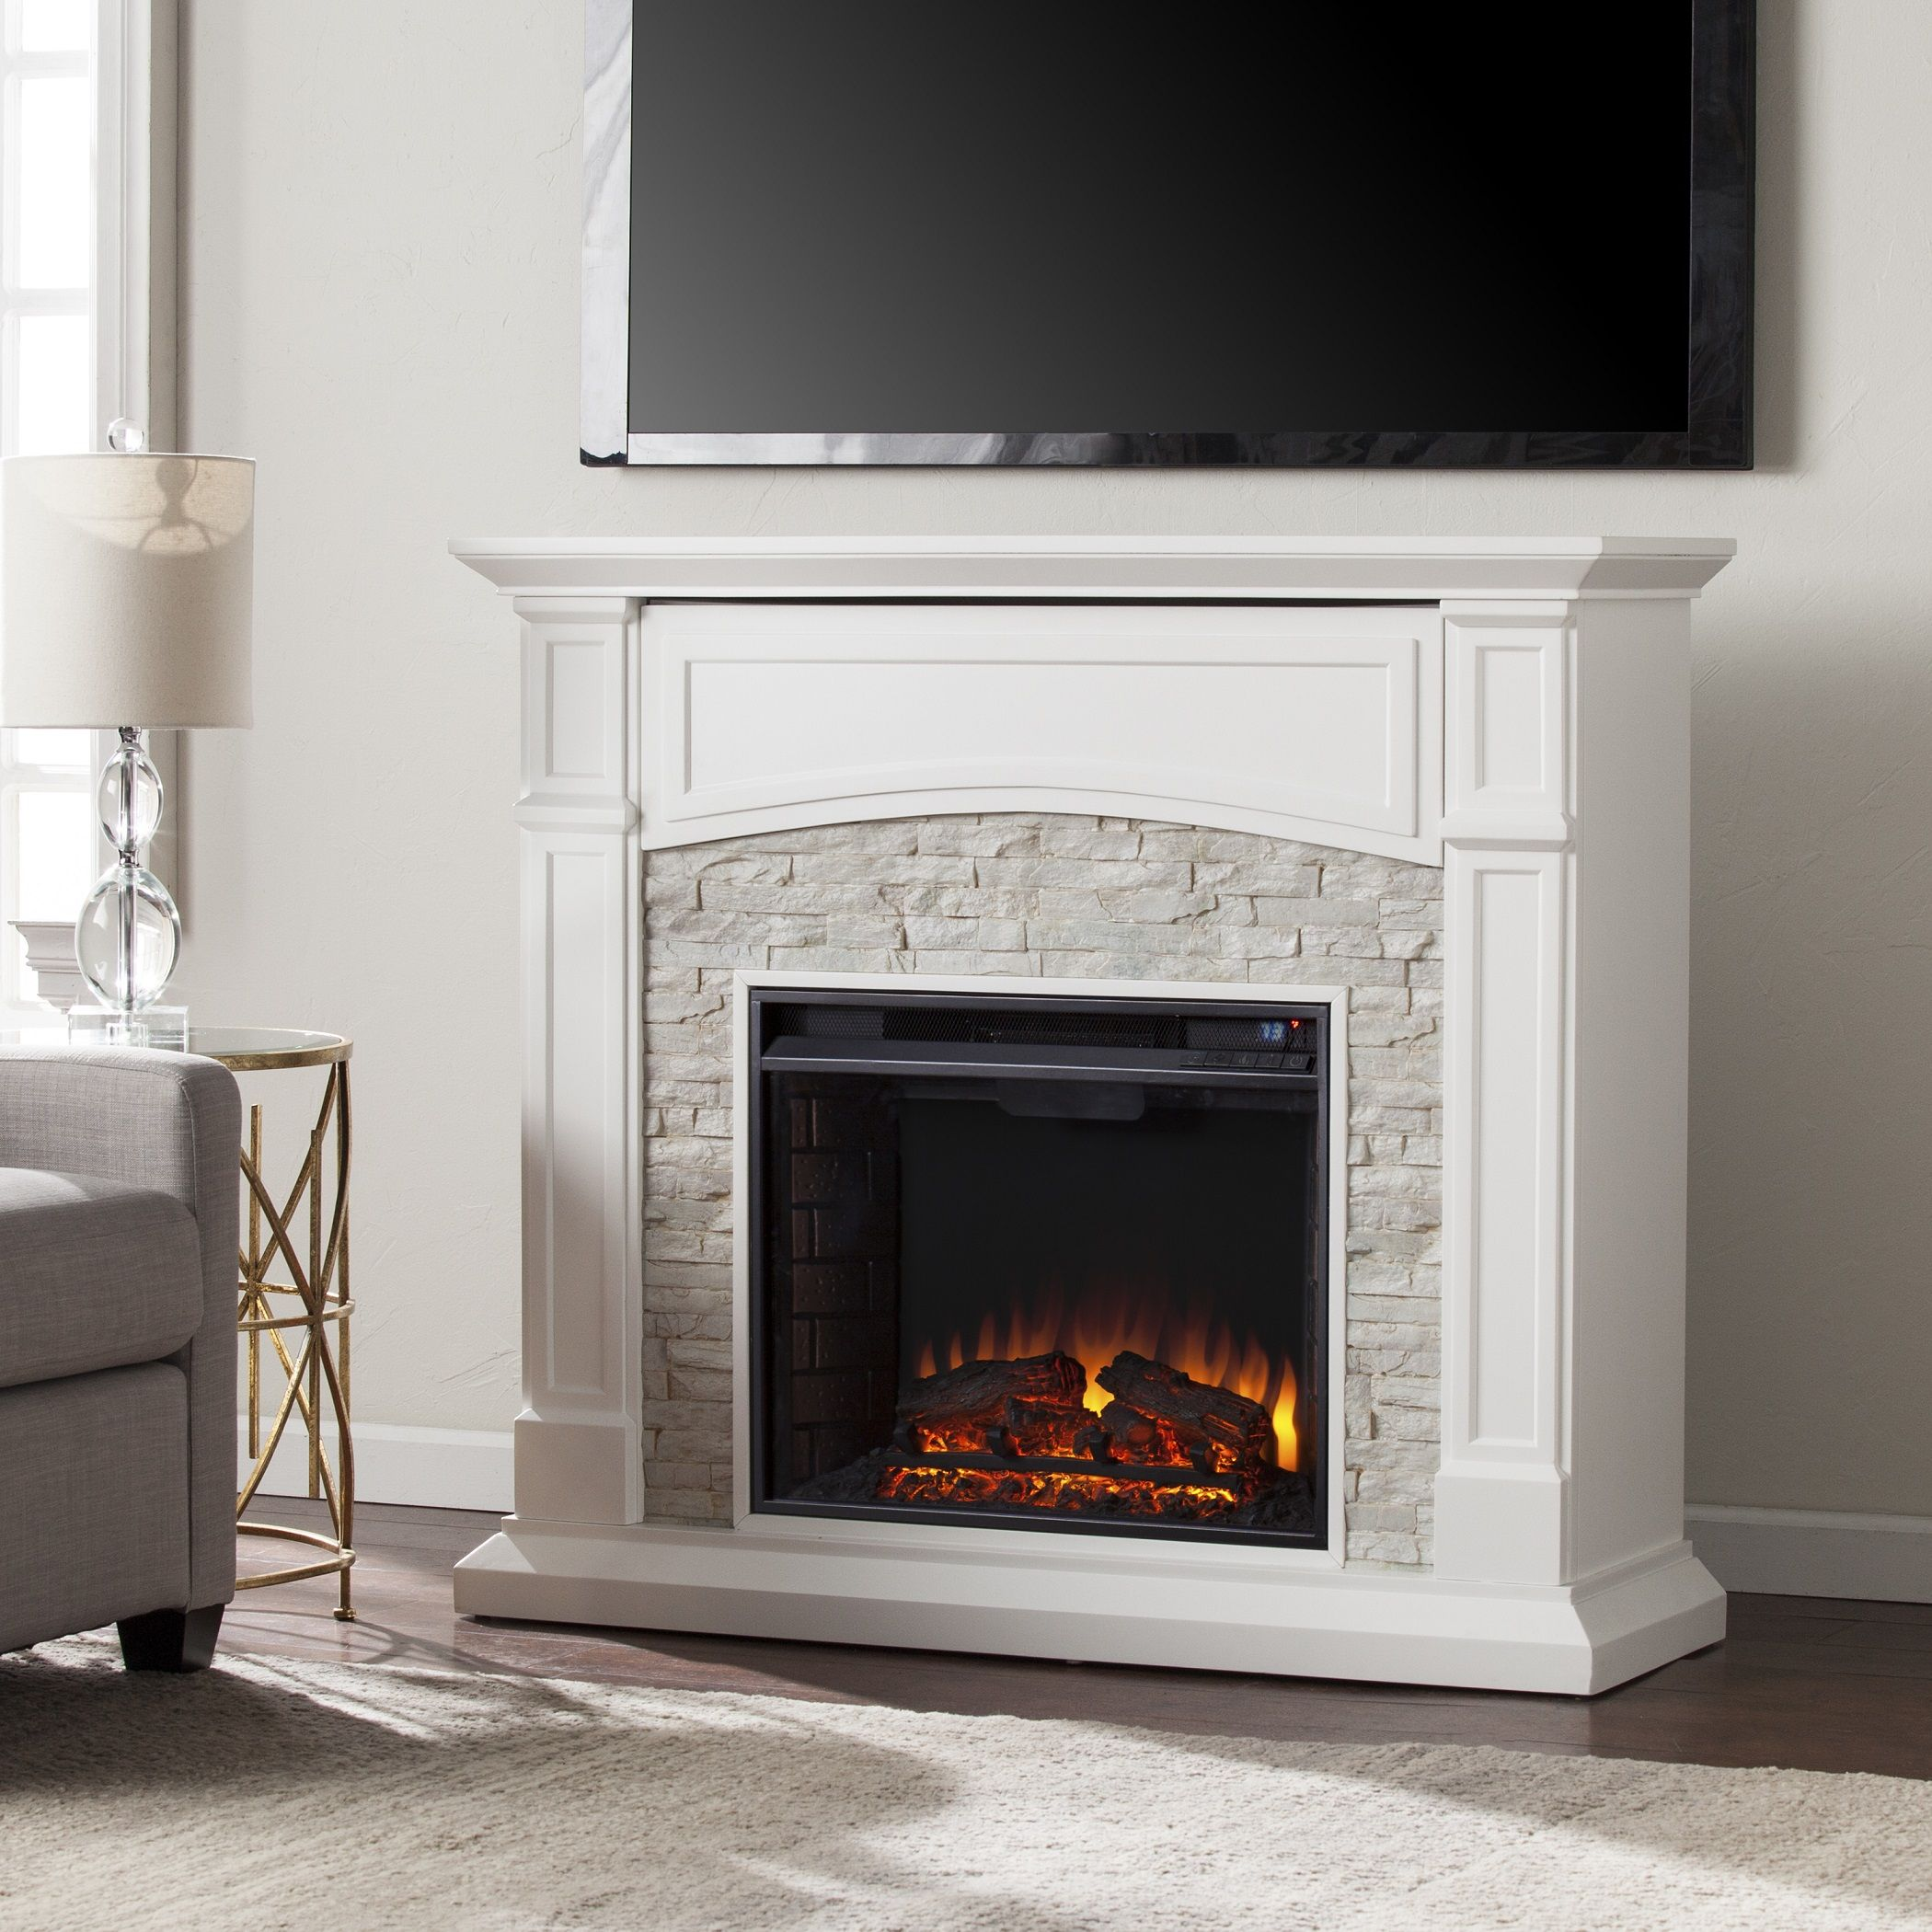 Duraflame Tv Stand With Infrared Quartz Electric Fireplace